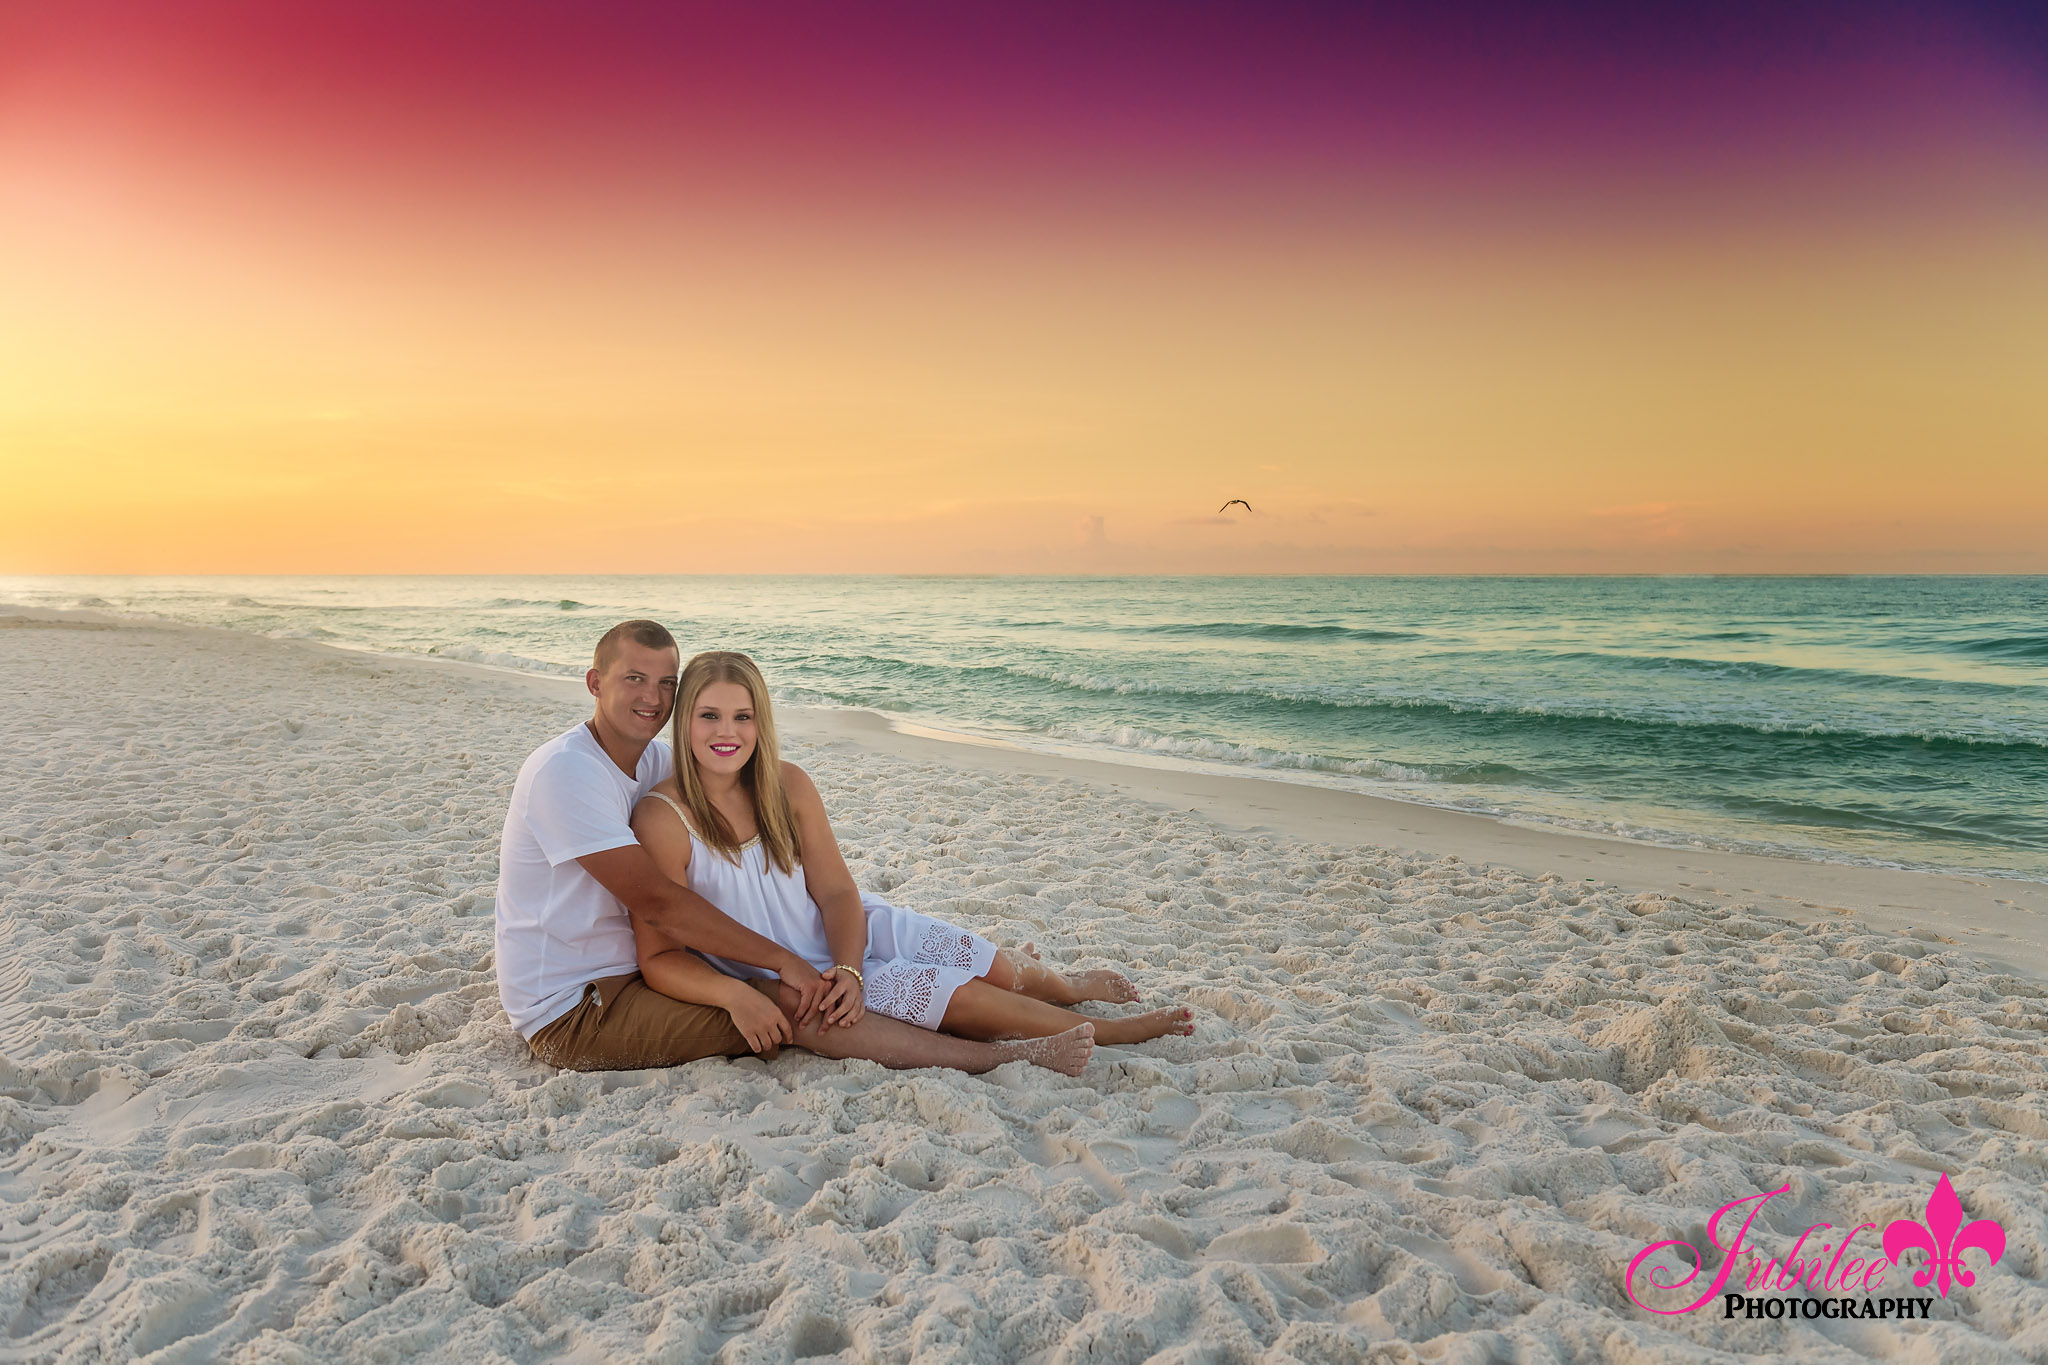 Destin_Sunrise_Photographer_0862